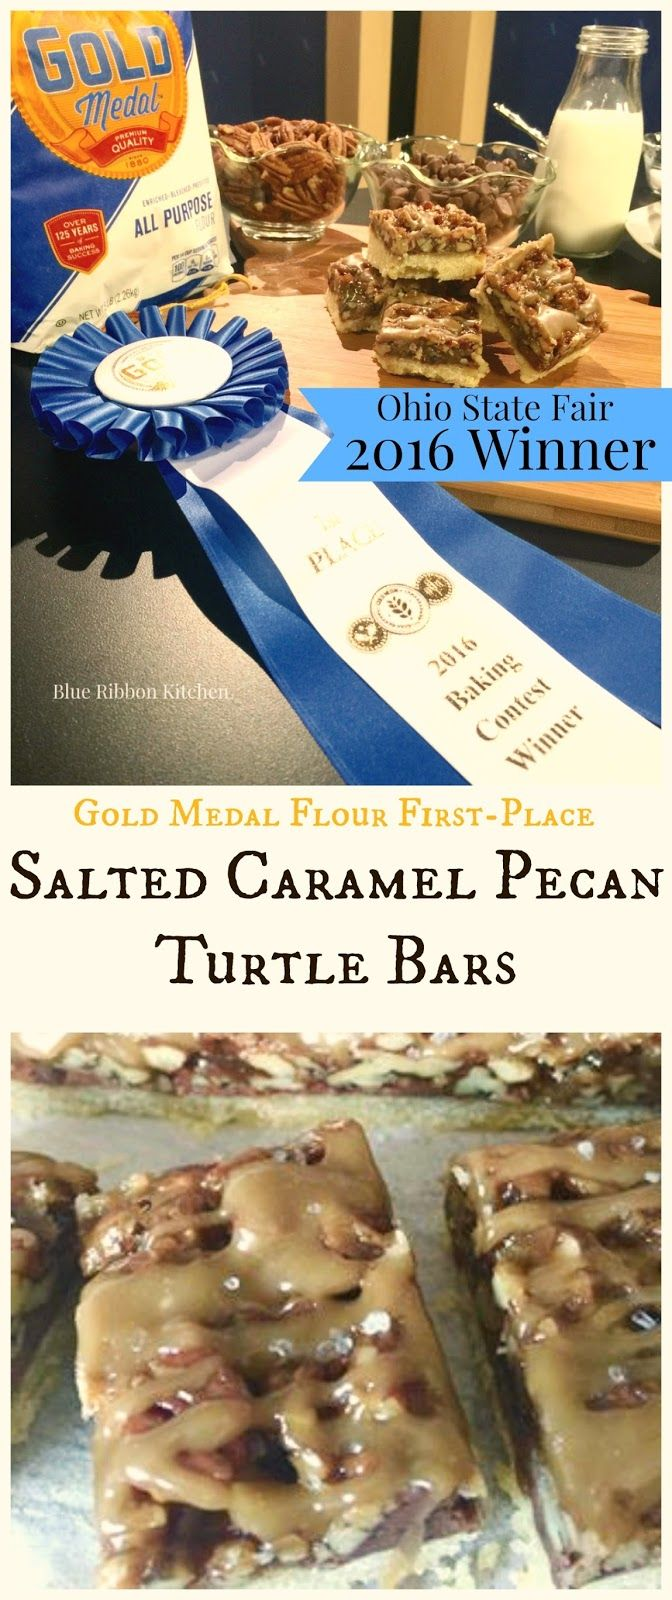 Blue Ribbon Kitchen: Please Meet The Newest Award-Winning Cookie: Salted Caramel Pecan Turtle Bars